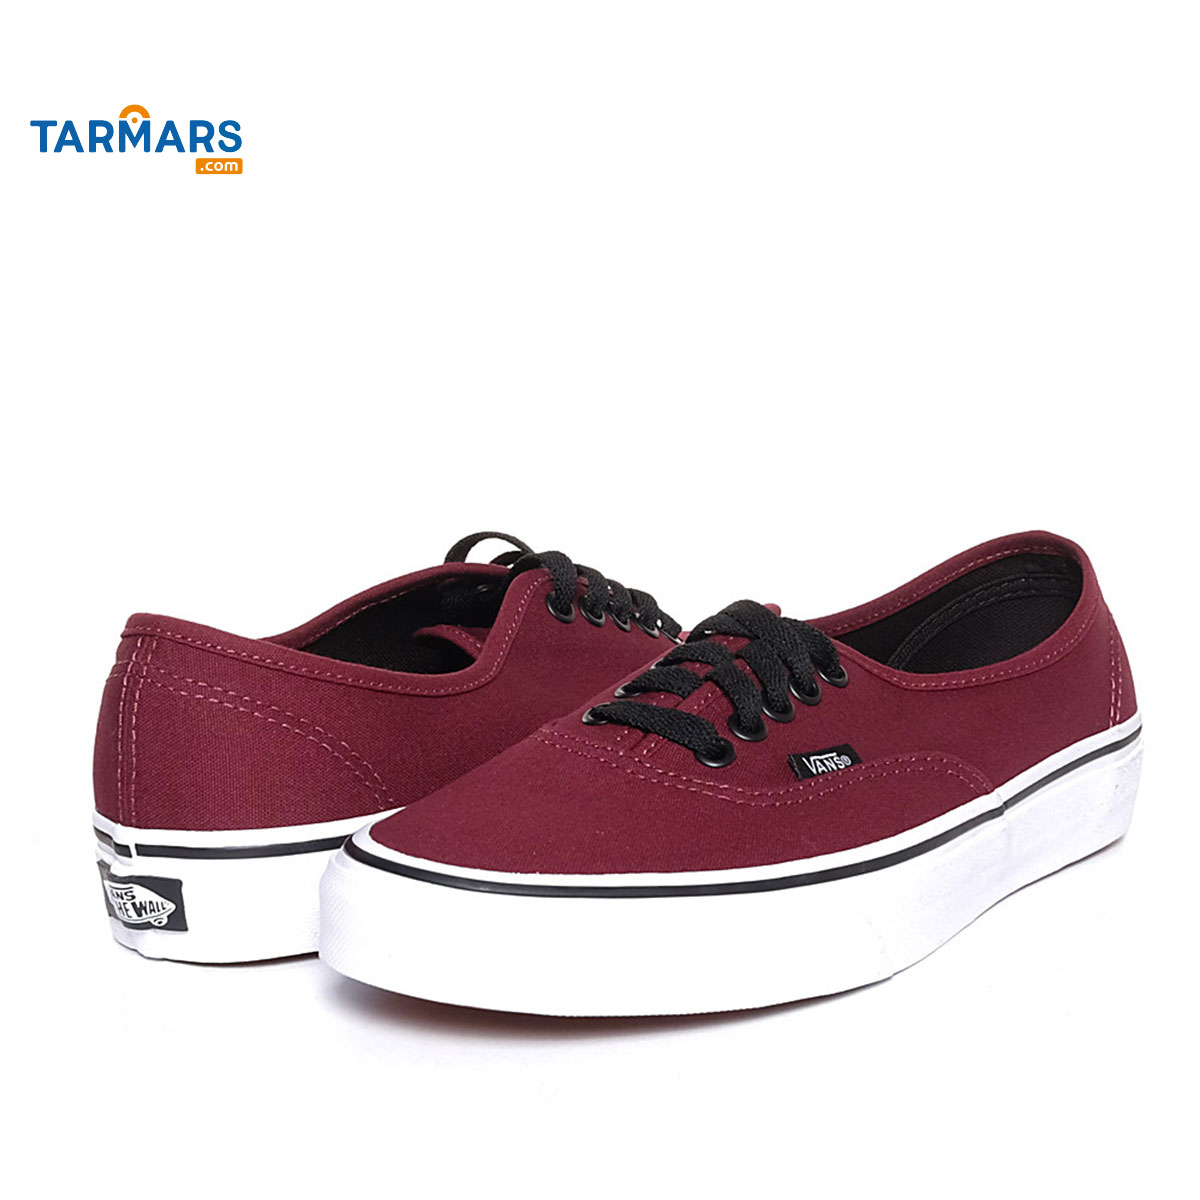 VANS AUTHENTIC VN000QER5U81